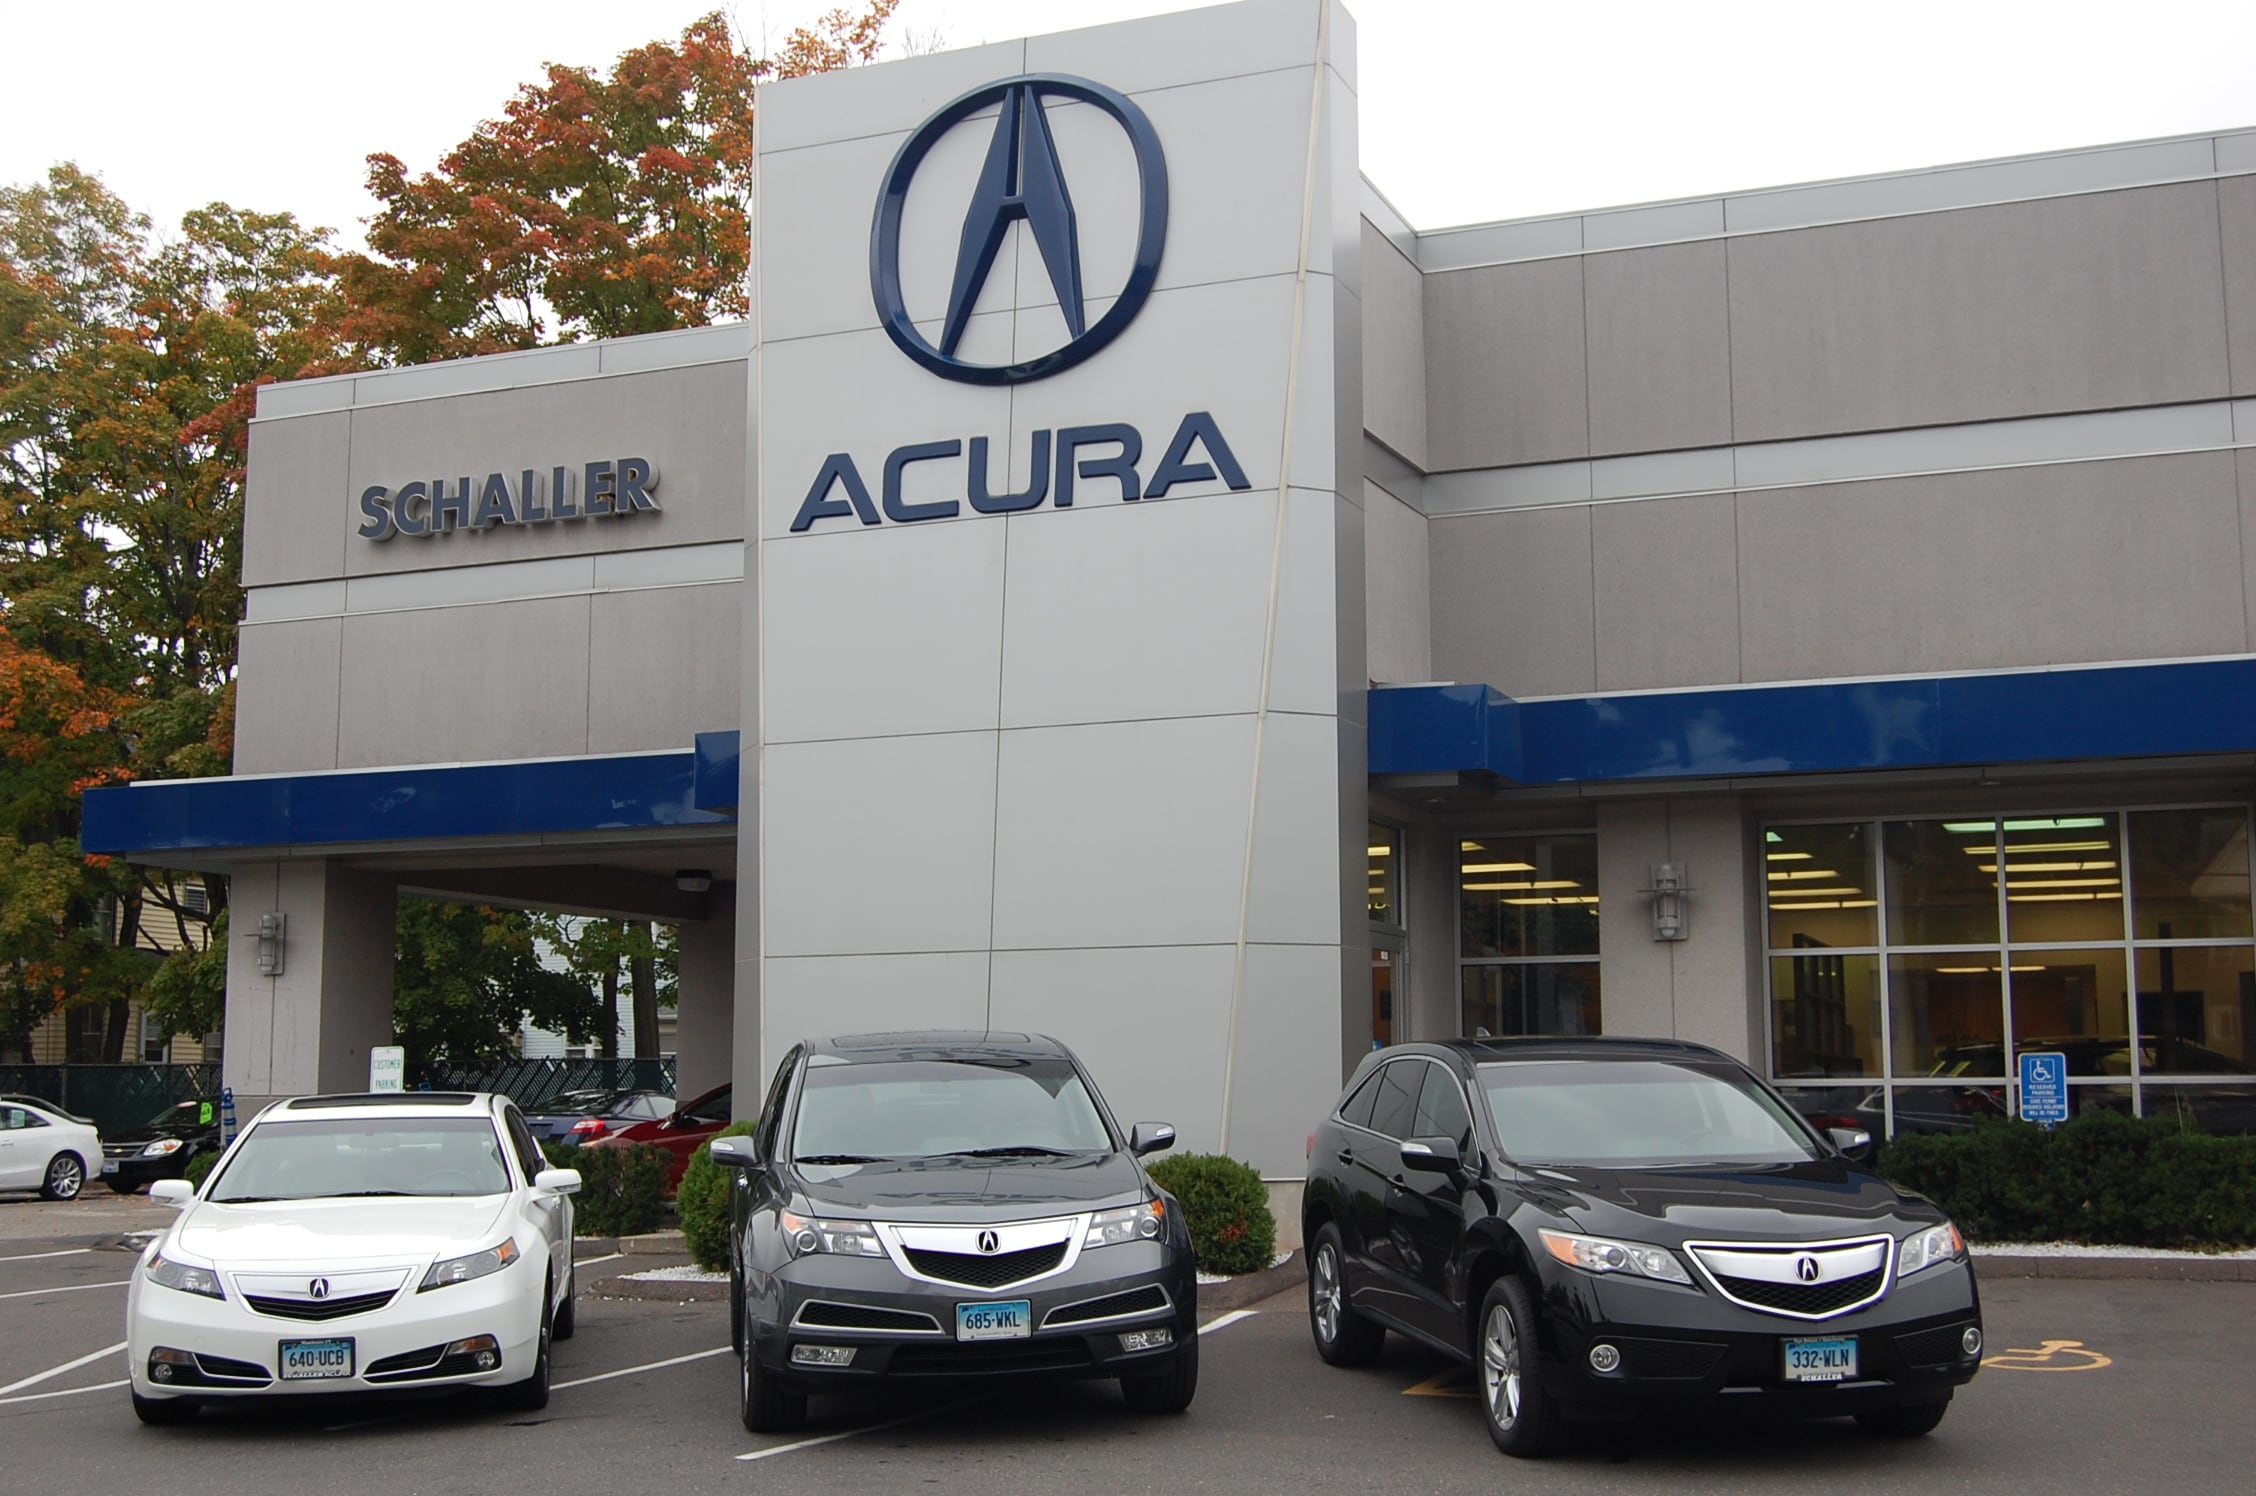 near me ford used car dealerships near me acura in riverside. Cars Review. Best American Auto & Cars Review